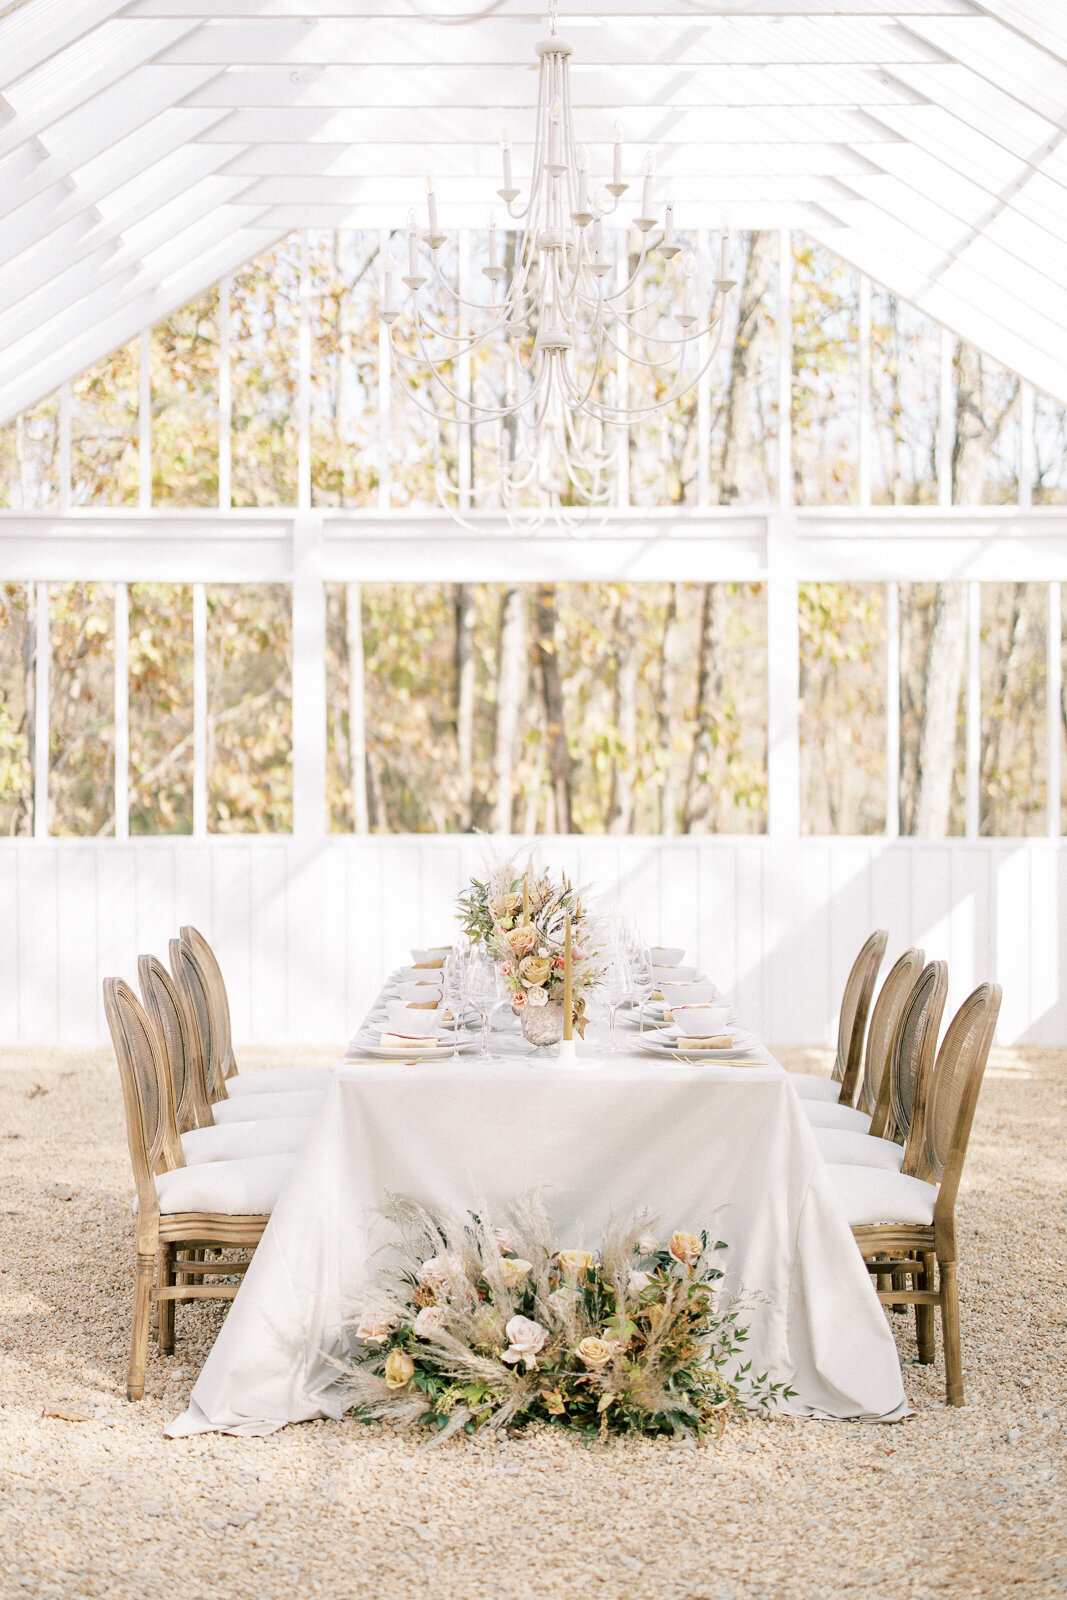 Modern and classic wedding rentals by The Heirloom Collection and Selah Ray Florals